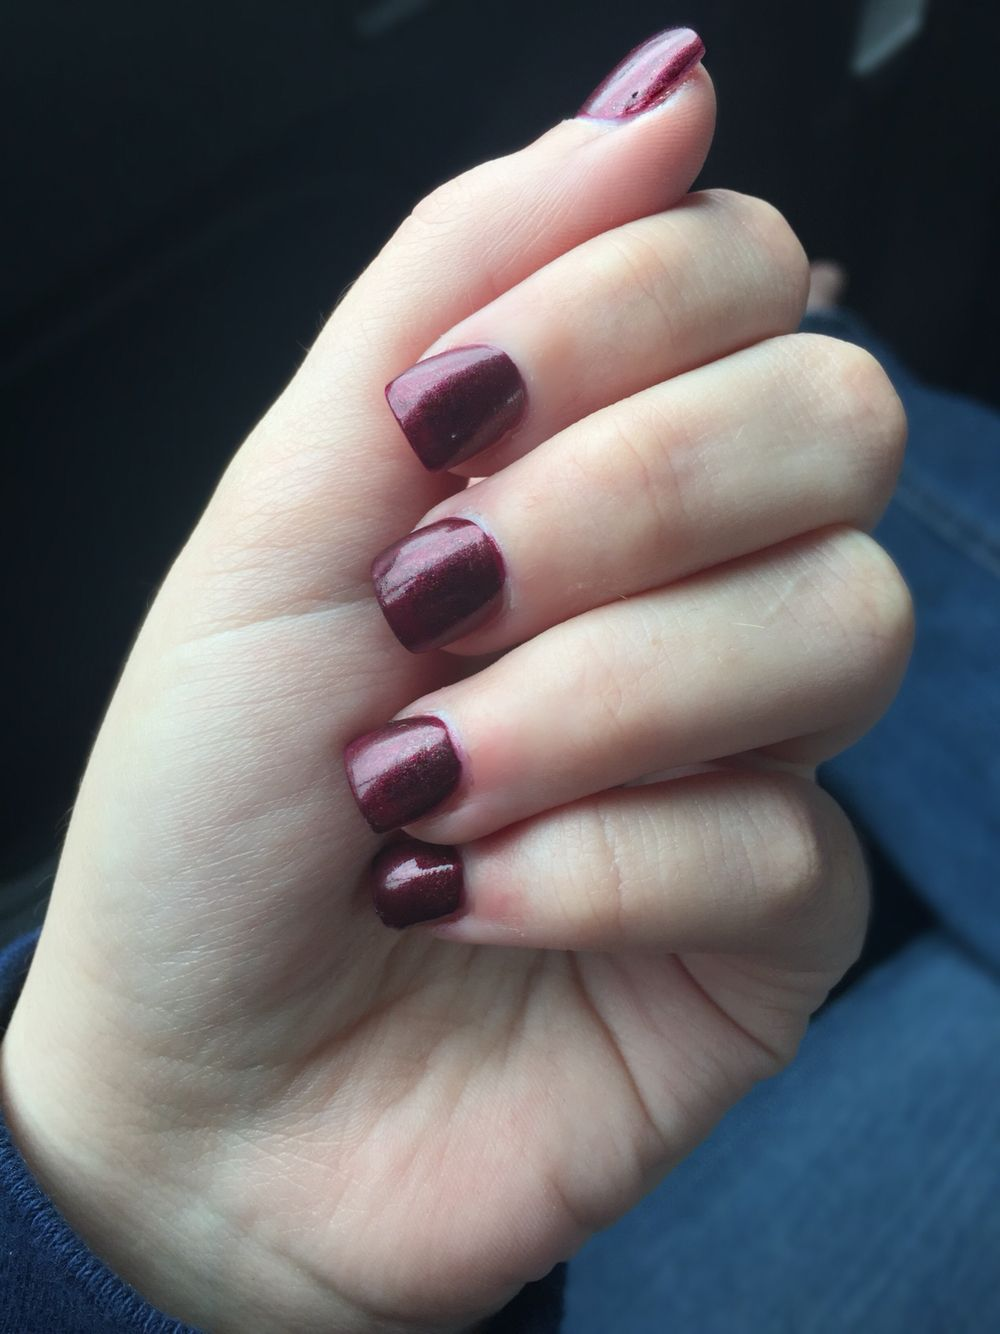 Fall acrylic nails short nails dark red nails autumn nails winter ...